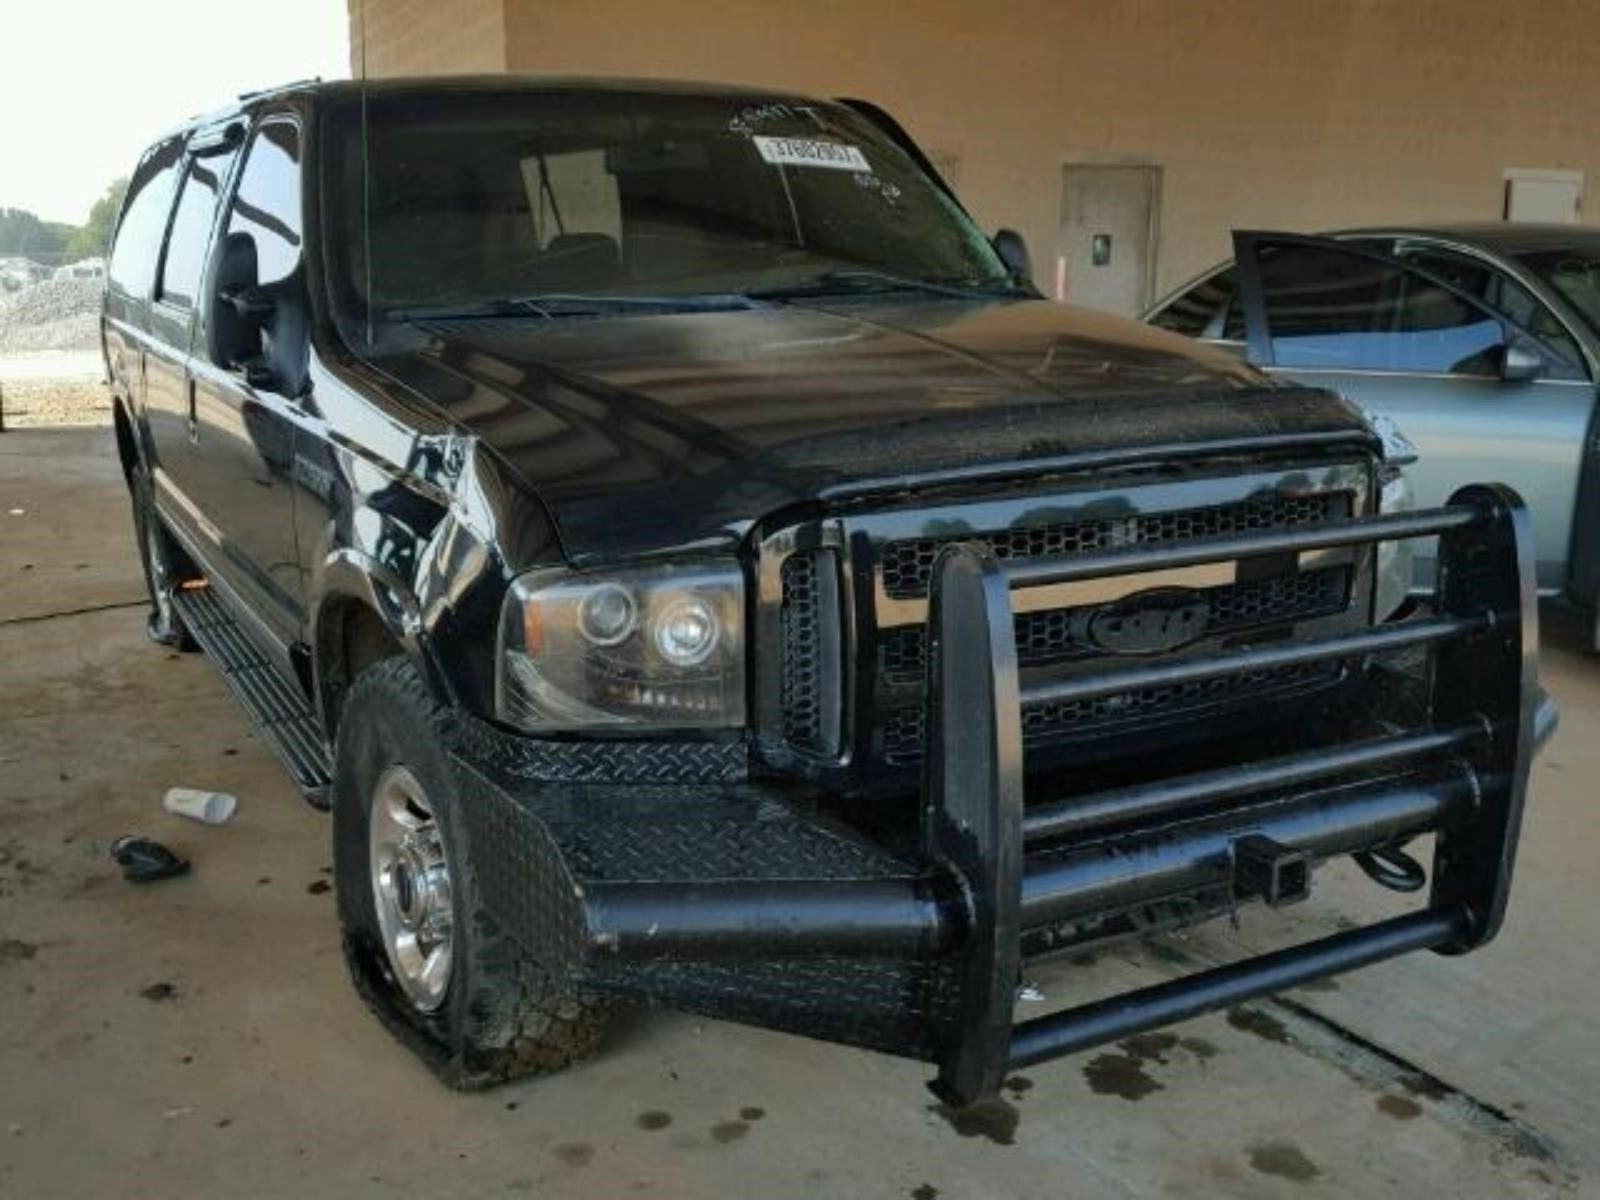 Ford Excursion Parts Diagram Used 2003 ford Excursion Abs System Parts for Sale Of Ford Excursion Parts Diagram